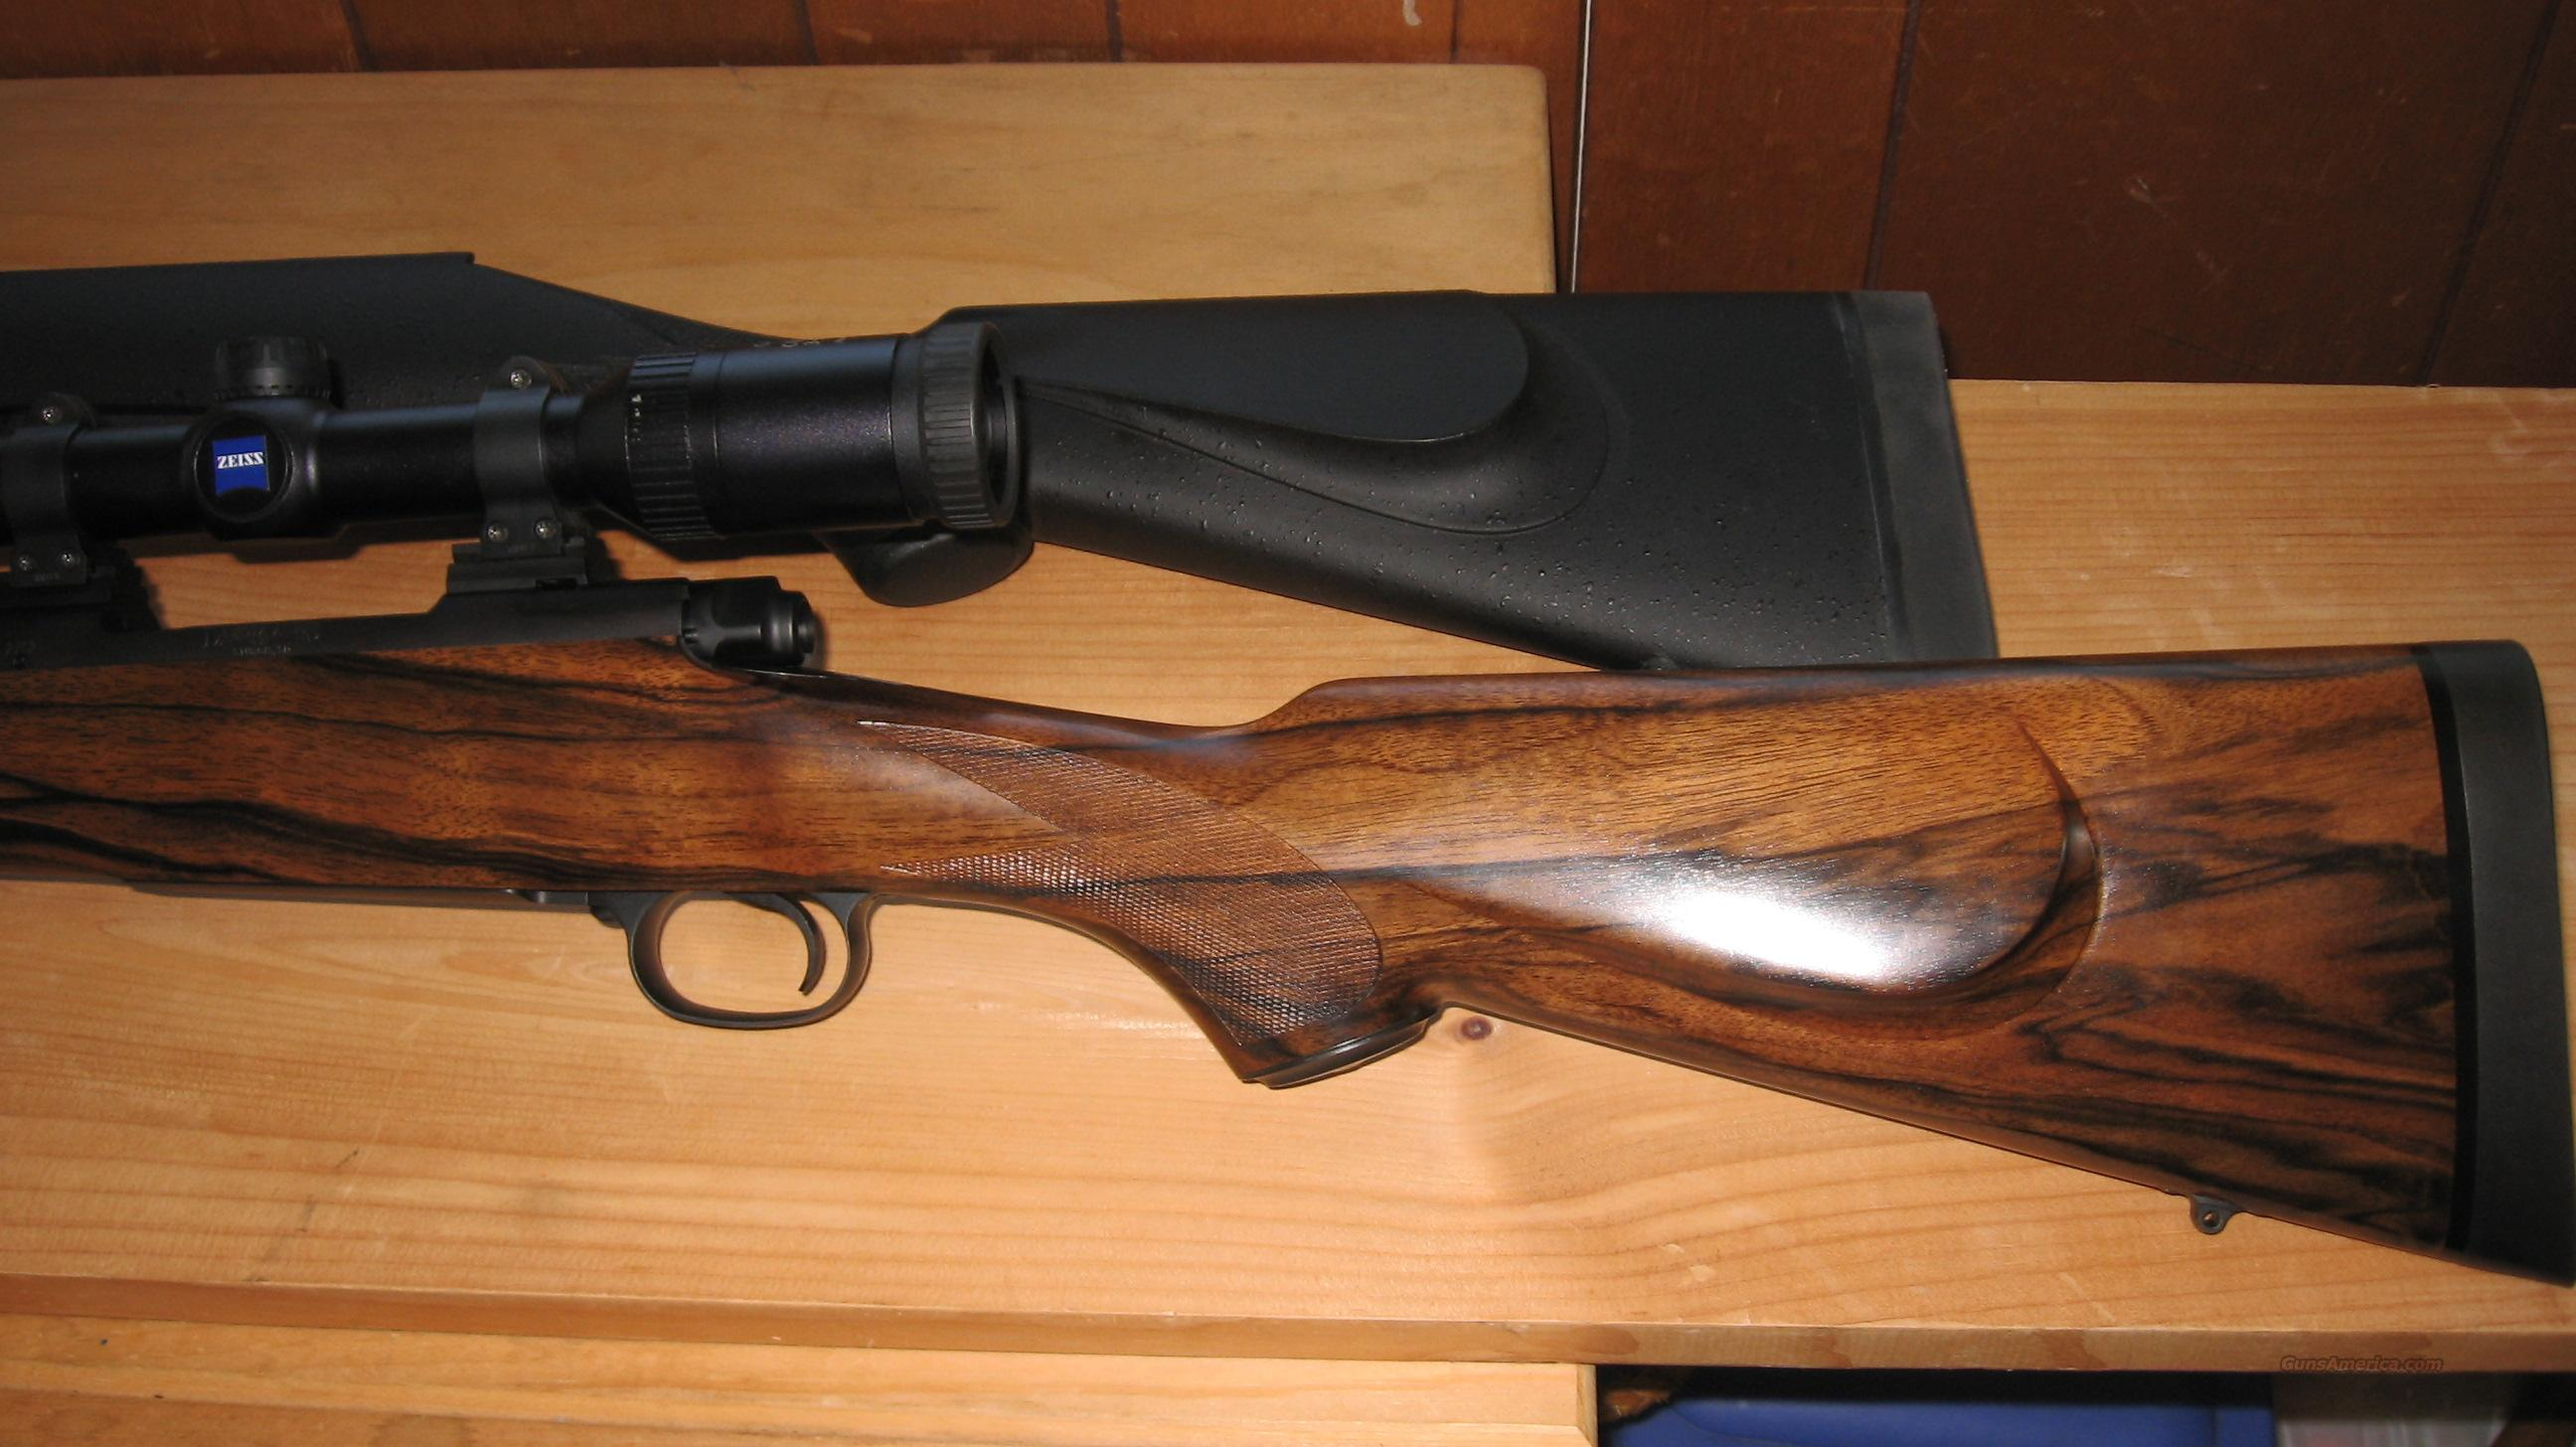 Dakota 76 Classic .338 Win Mag & Leupold SOLD PENDING FUNDS  Guns > Rifles > Dakota Arms Rifles